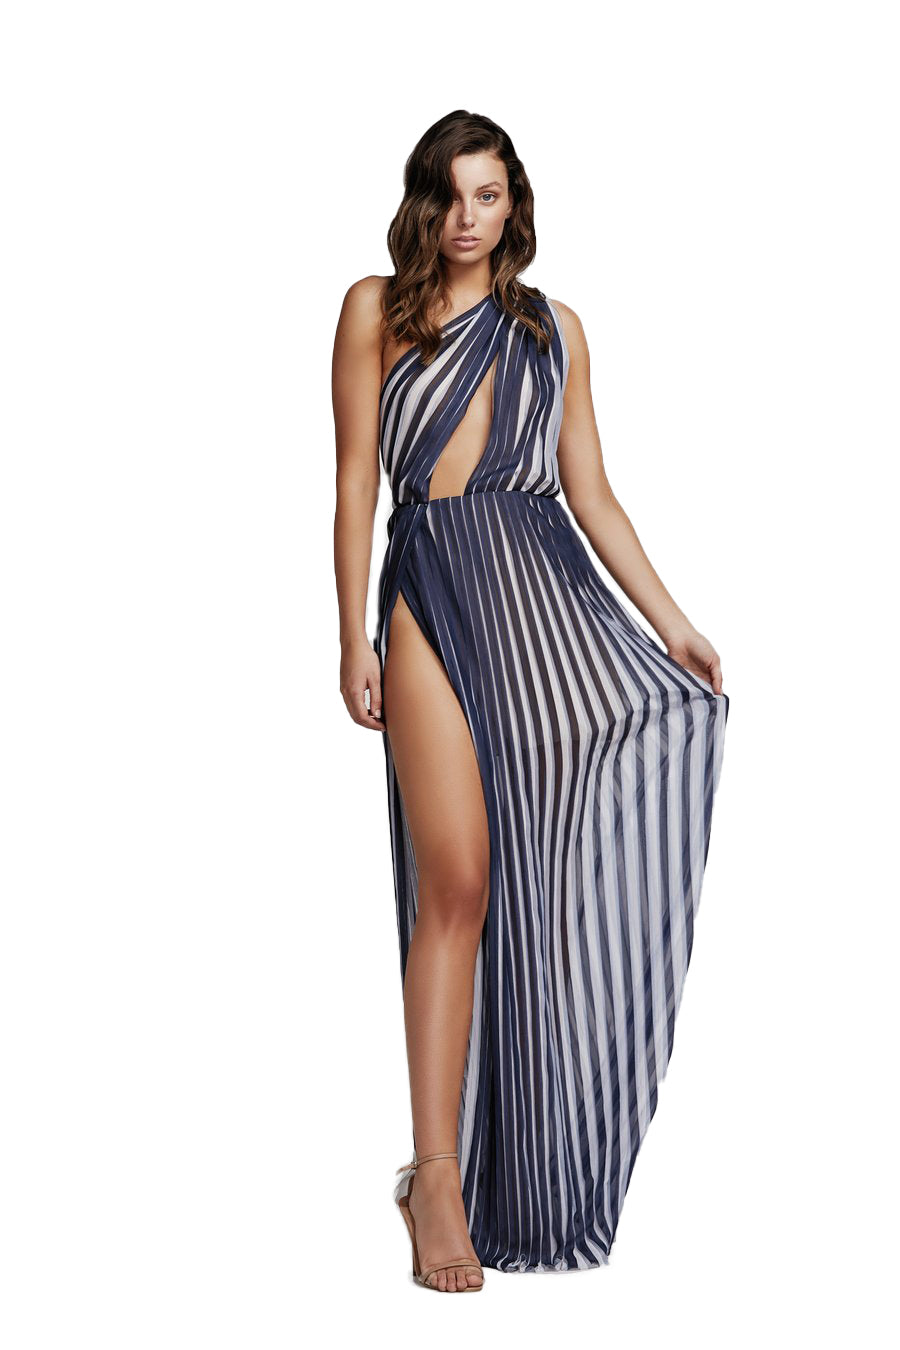 LEXI PEPPI MAXI DRESS IN BLUE & WHITE